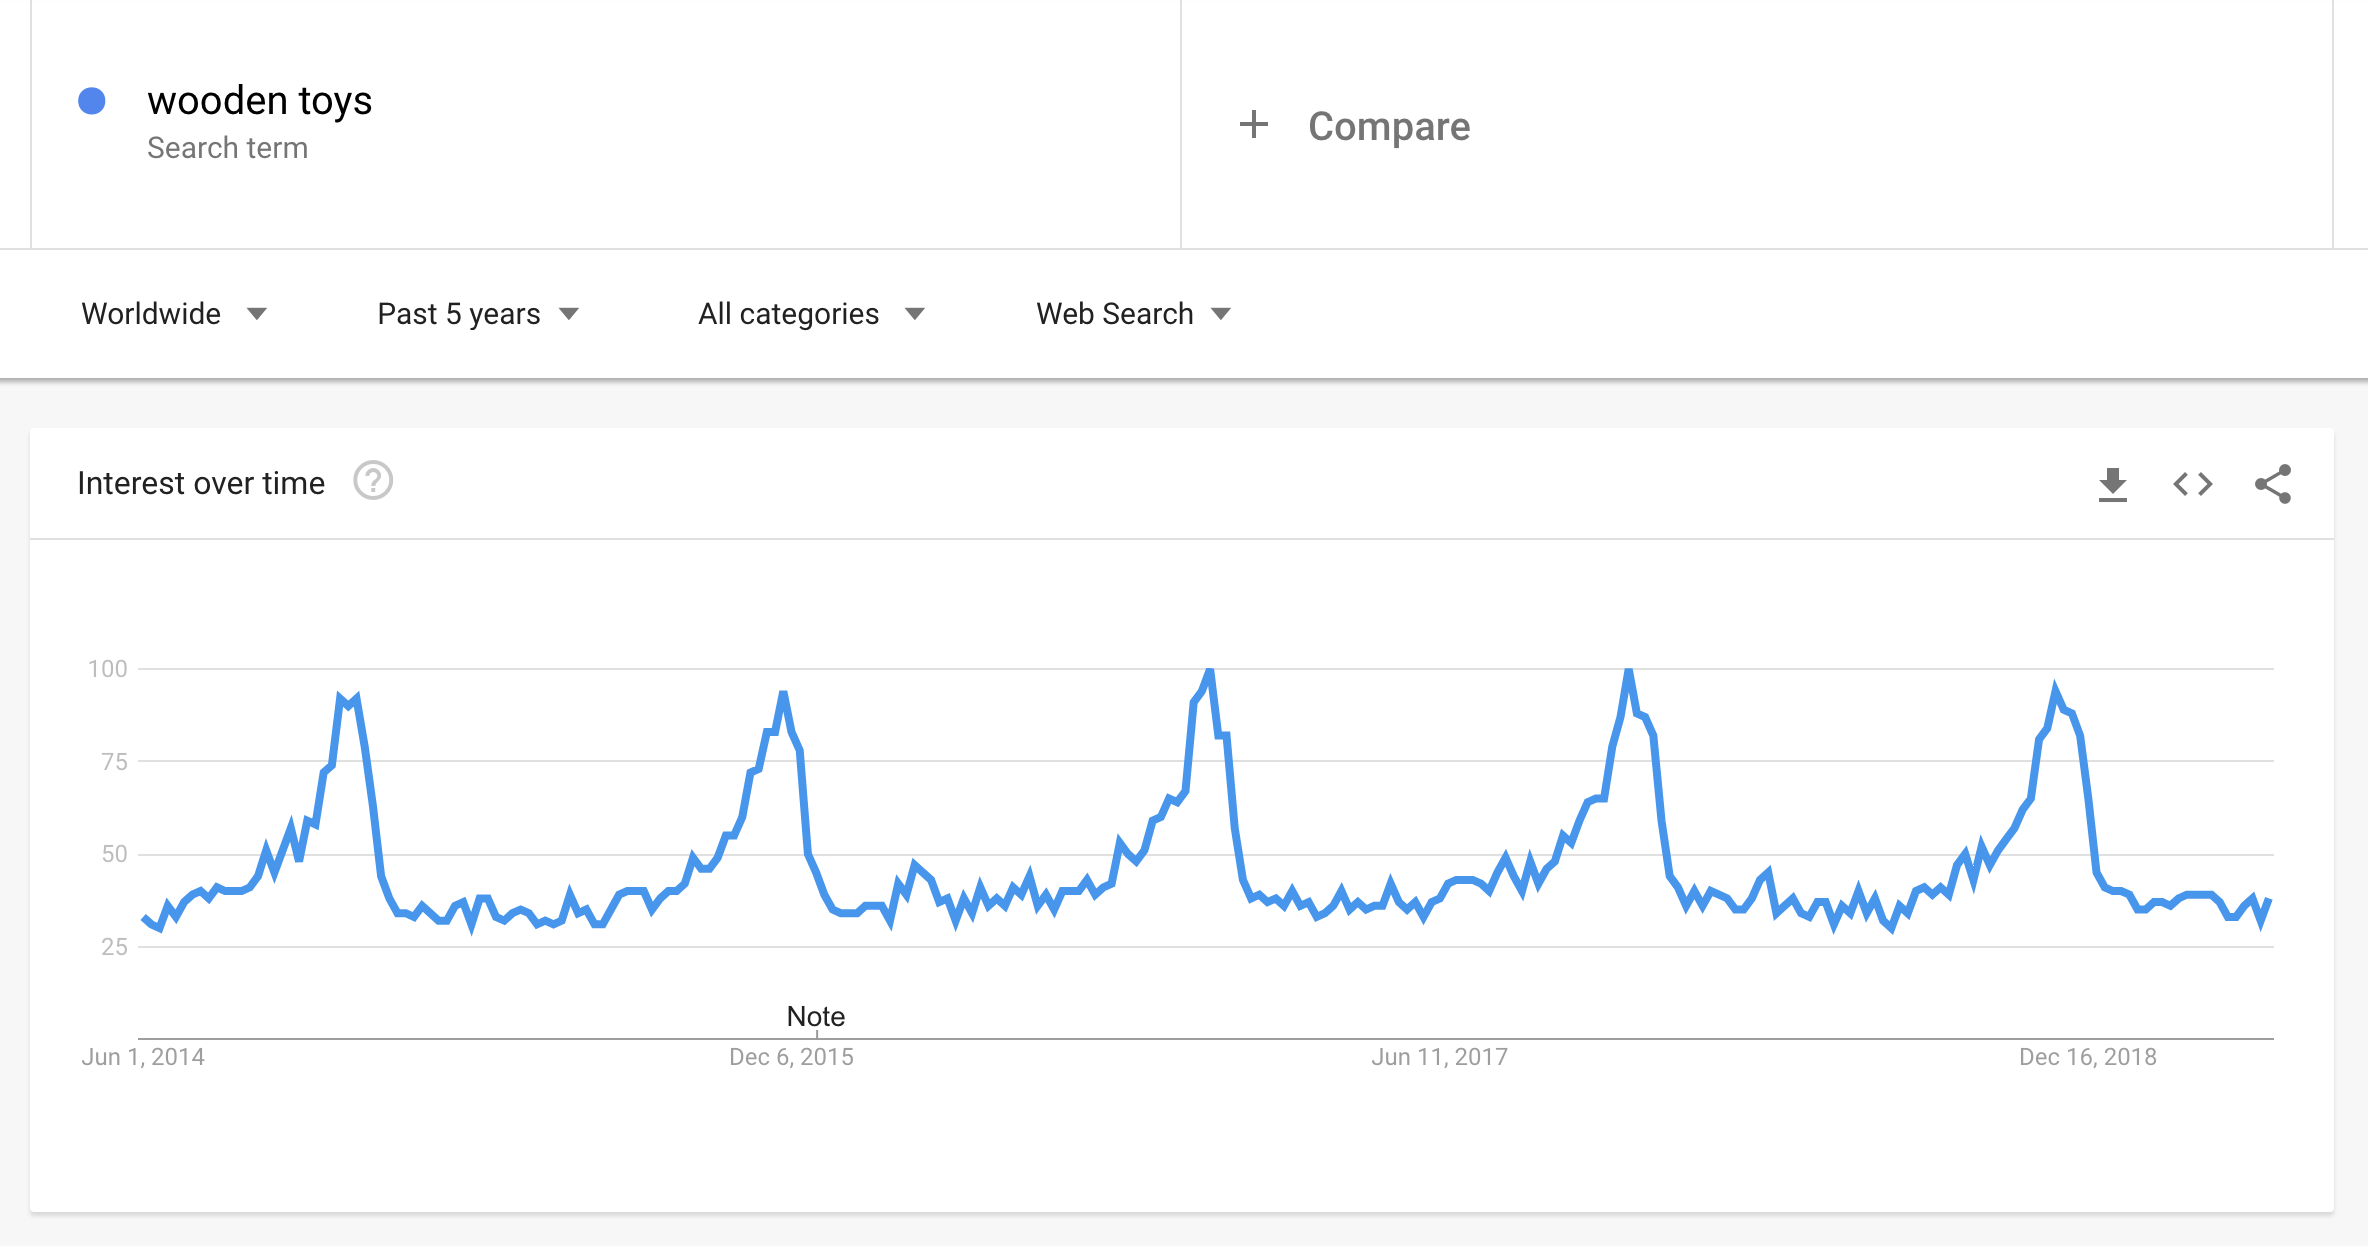 Google Trends for wooden toys